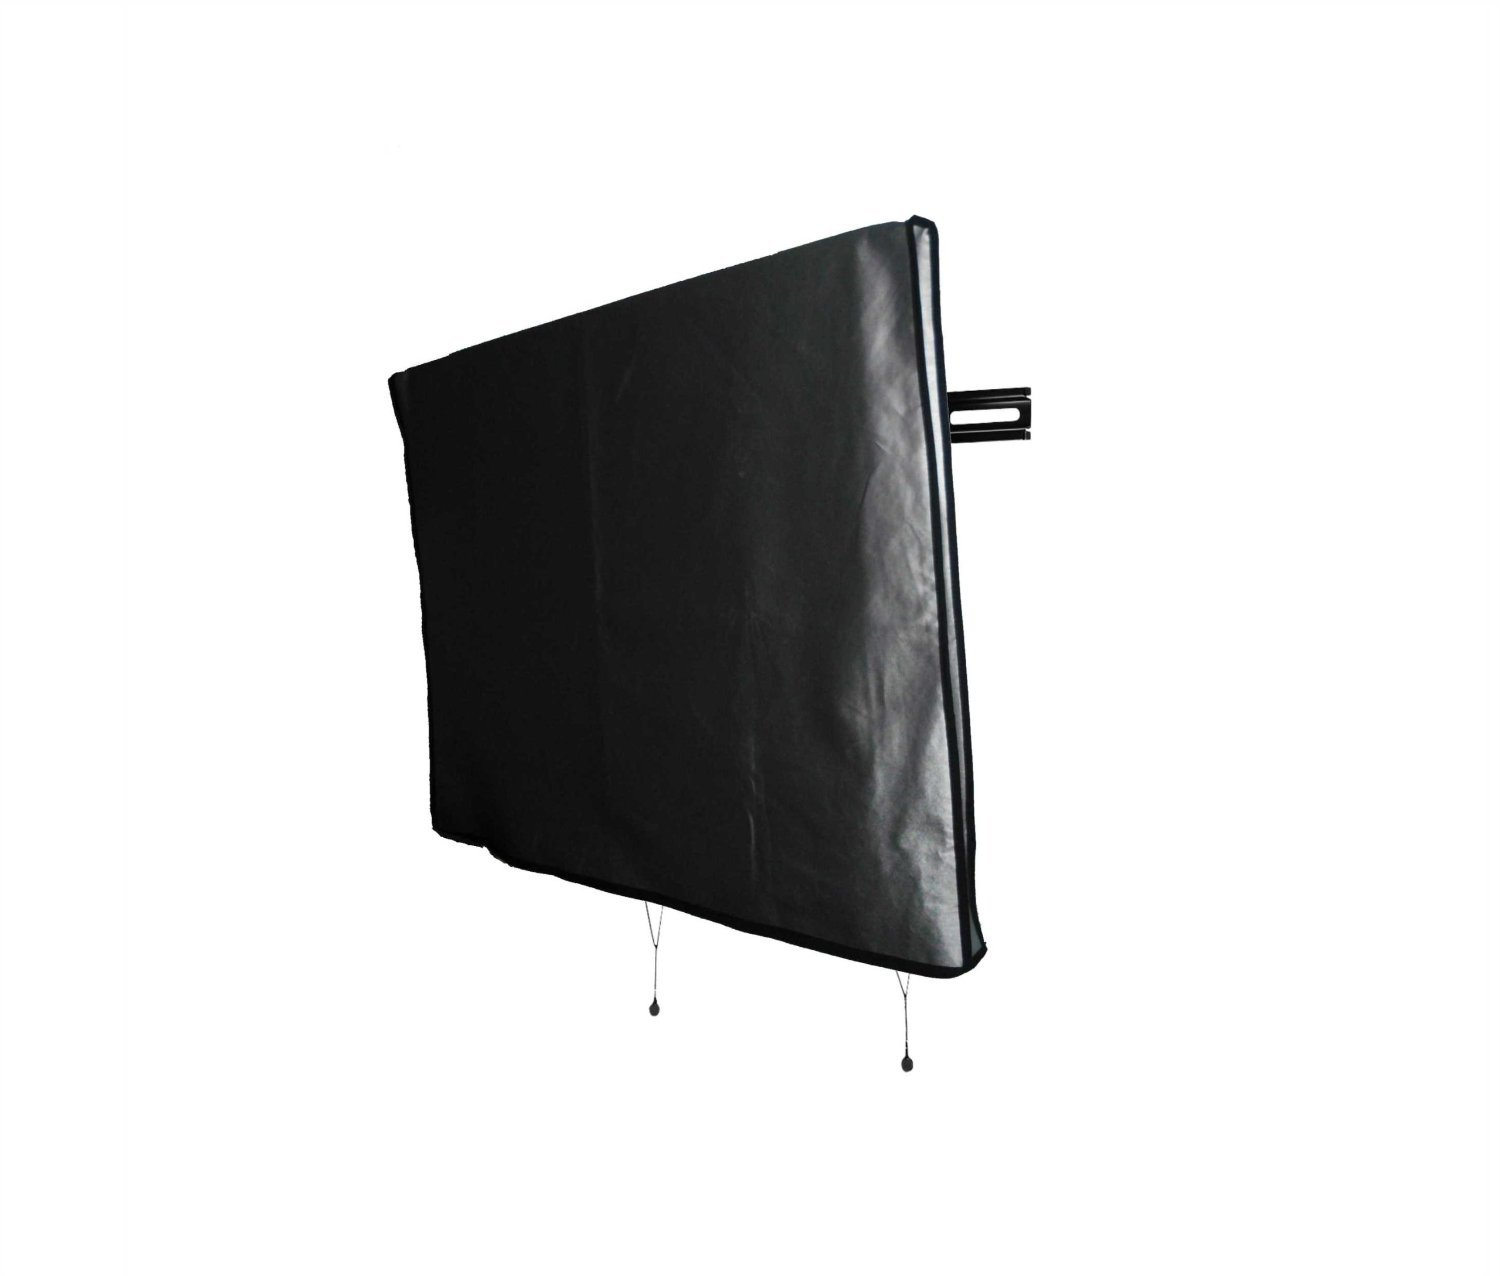 Large Flat Screen TV (65'') Marine Grade Nylon Dust Black Color Cover Ideal for Outdoor Locations Such as Restaurants, Hotels, Marinas or Poolside Locations (65'' Cover - 60'' x 4'' x 35.5'')